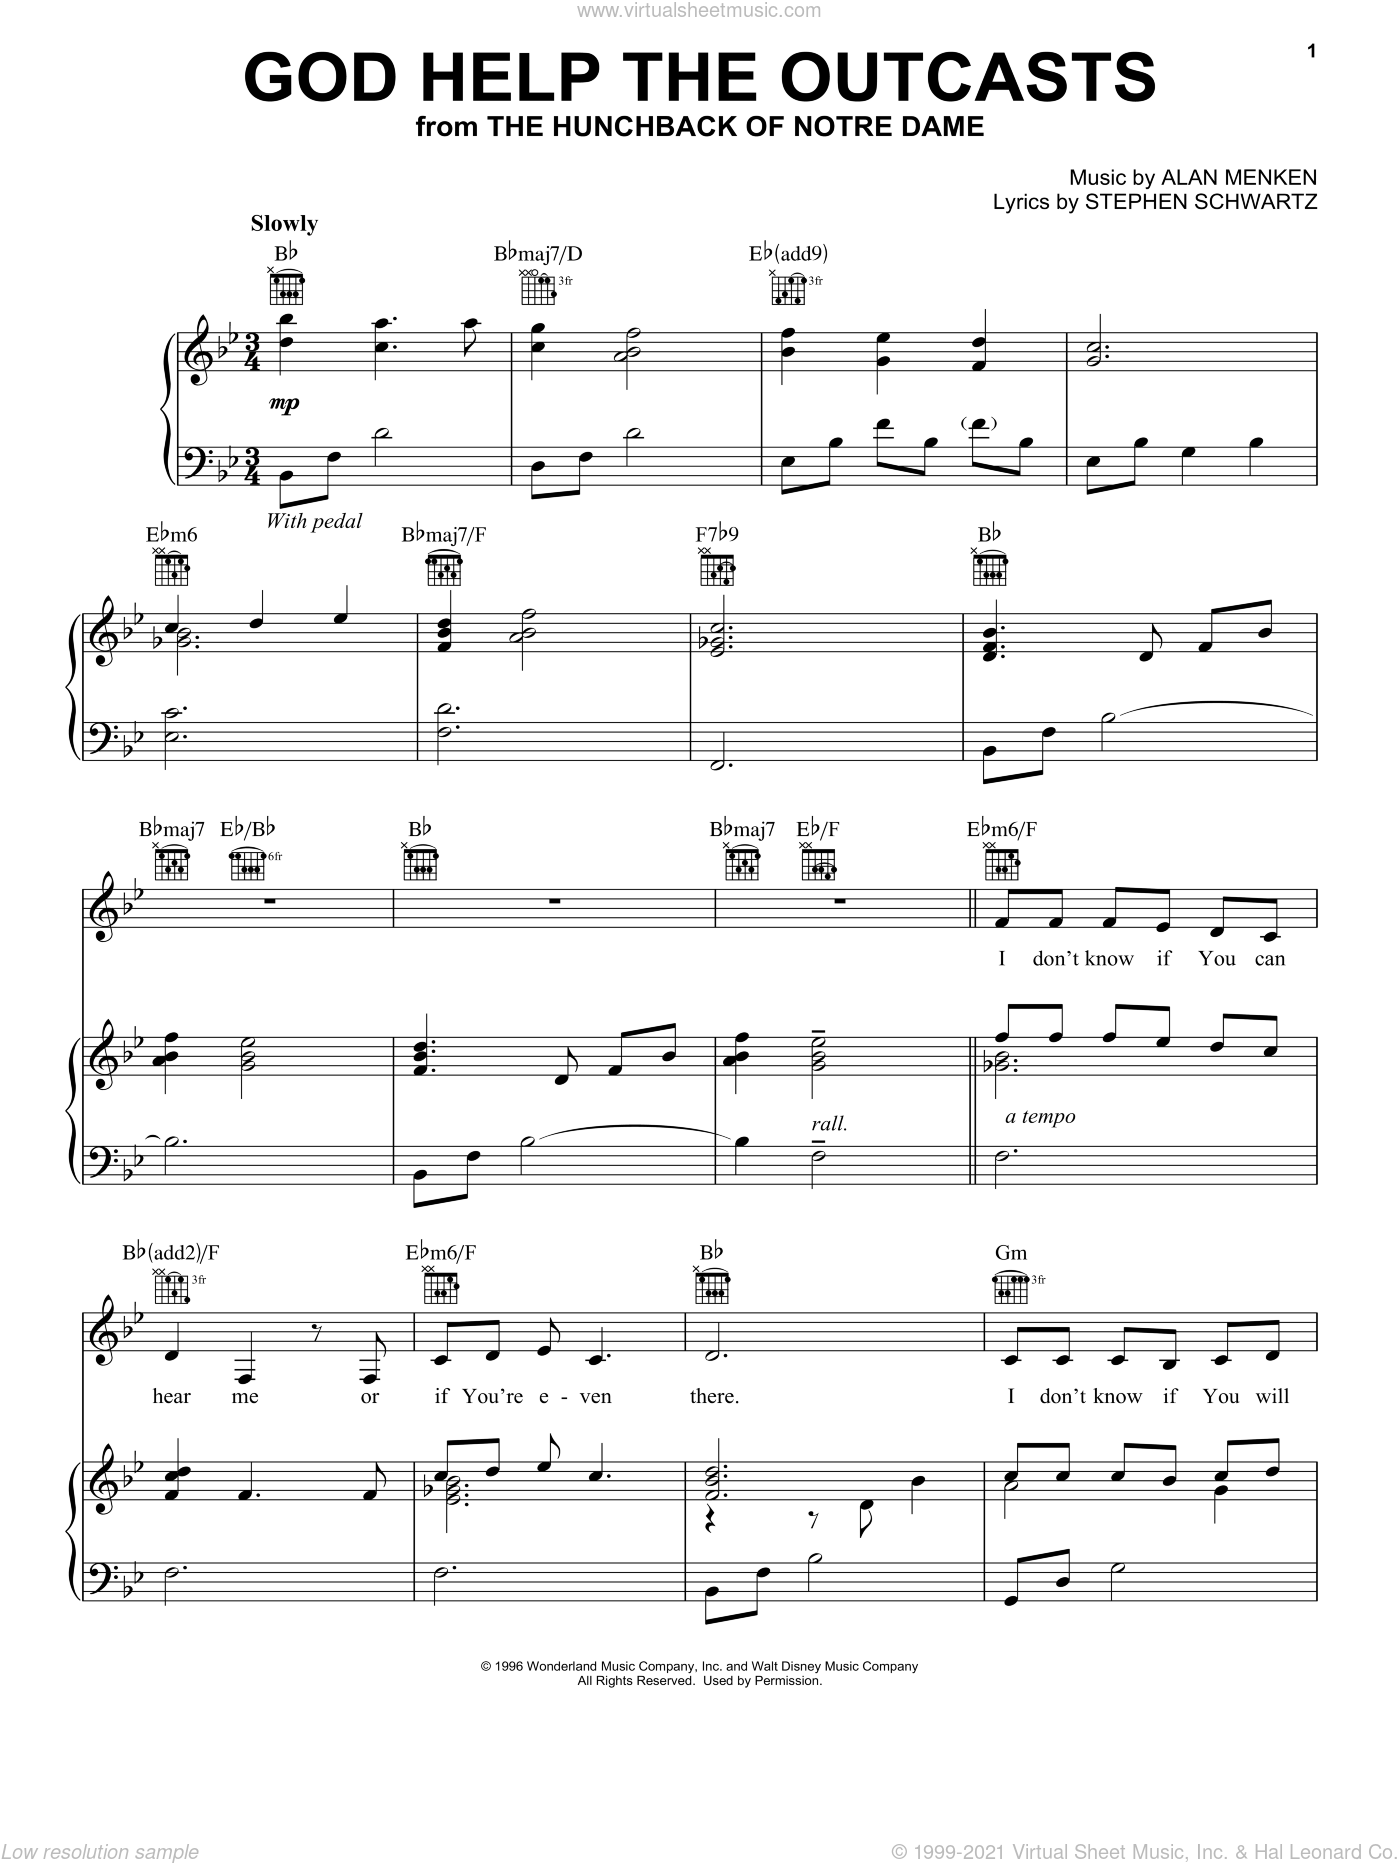 God Help The Outcasts sheet music for voice, piano or guitar by Bette Midler, Alan Menken and Stephen Schwartz, intermediate. Score Image Preview.